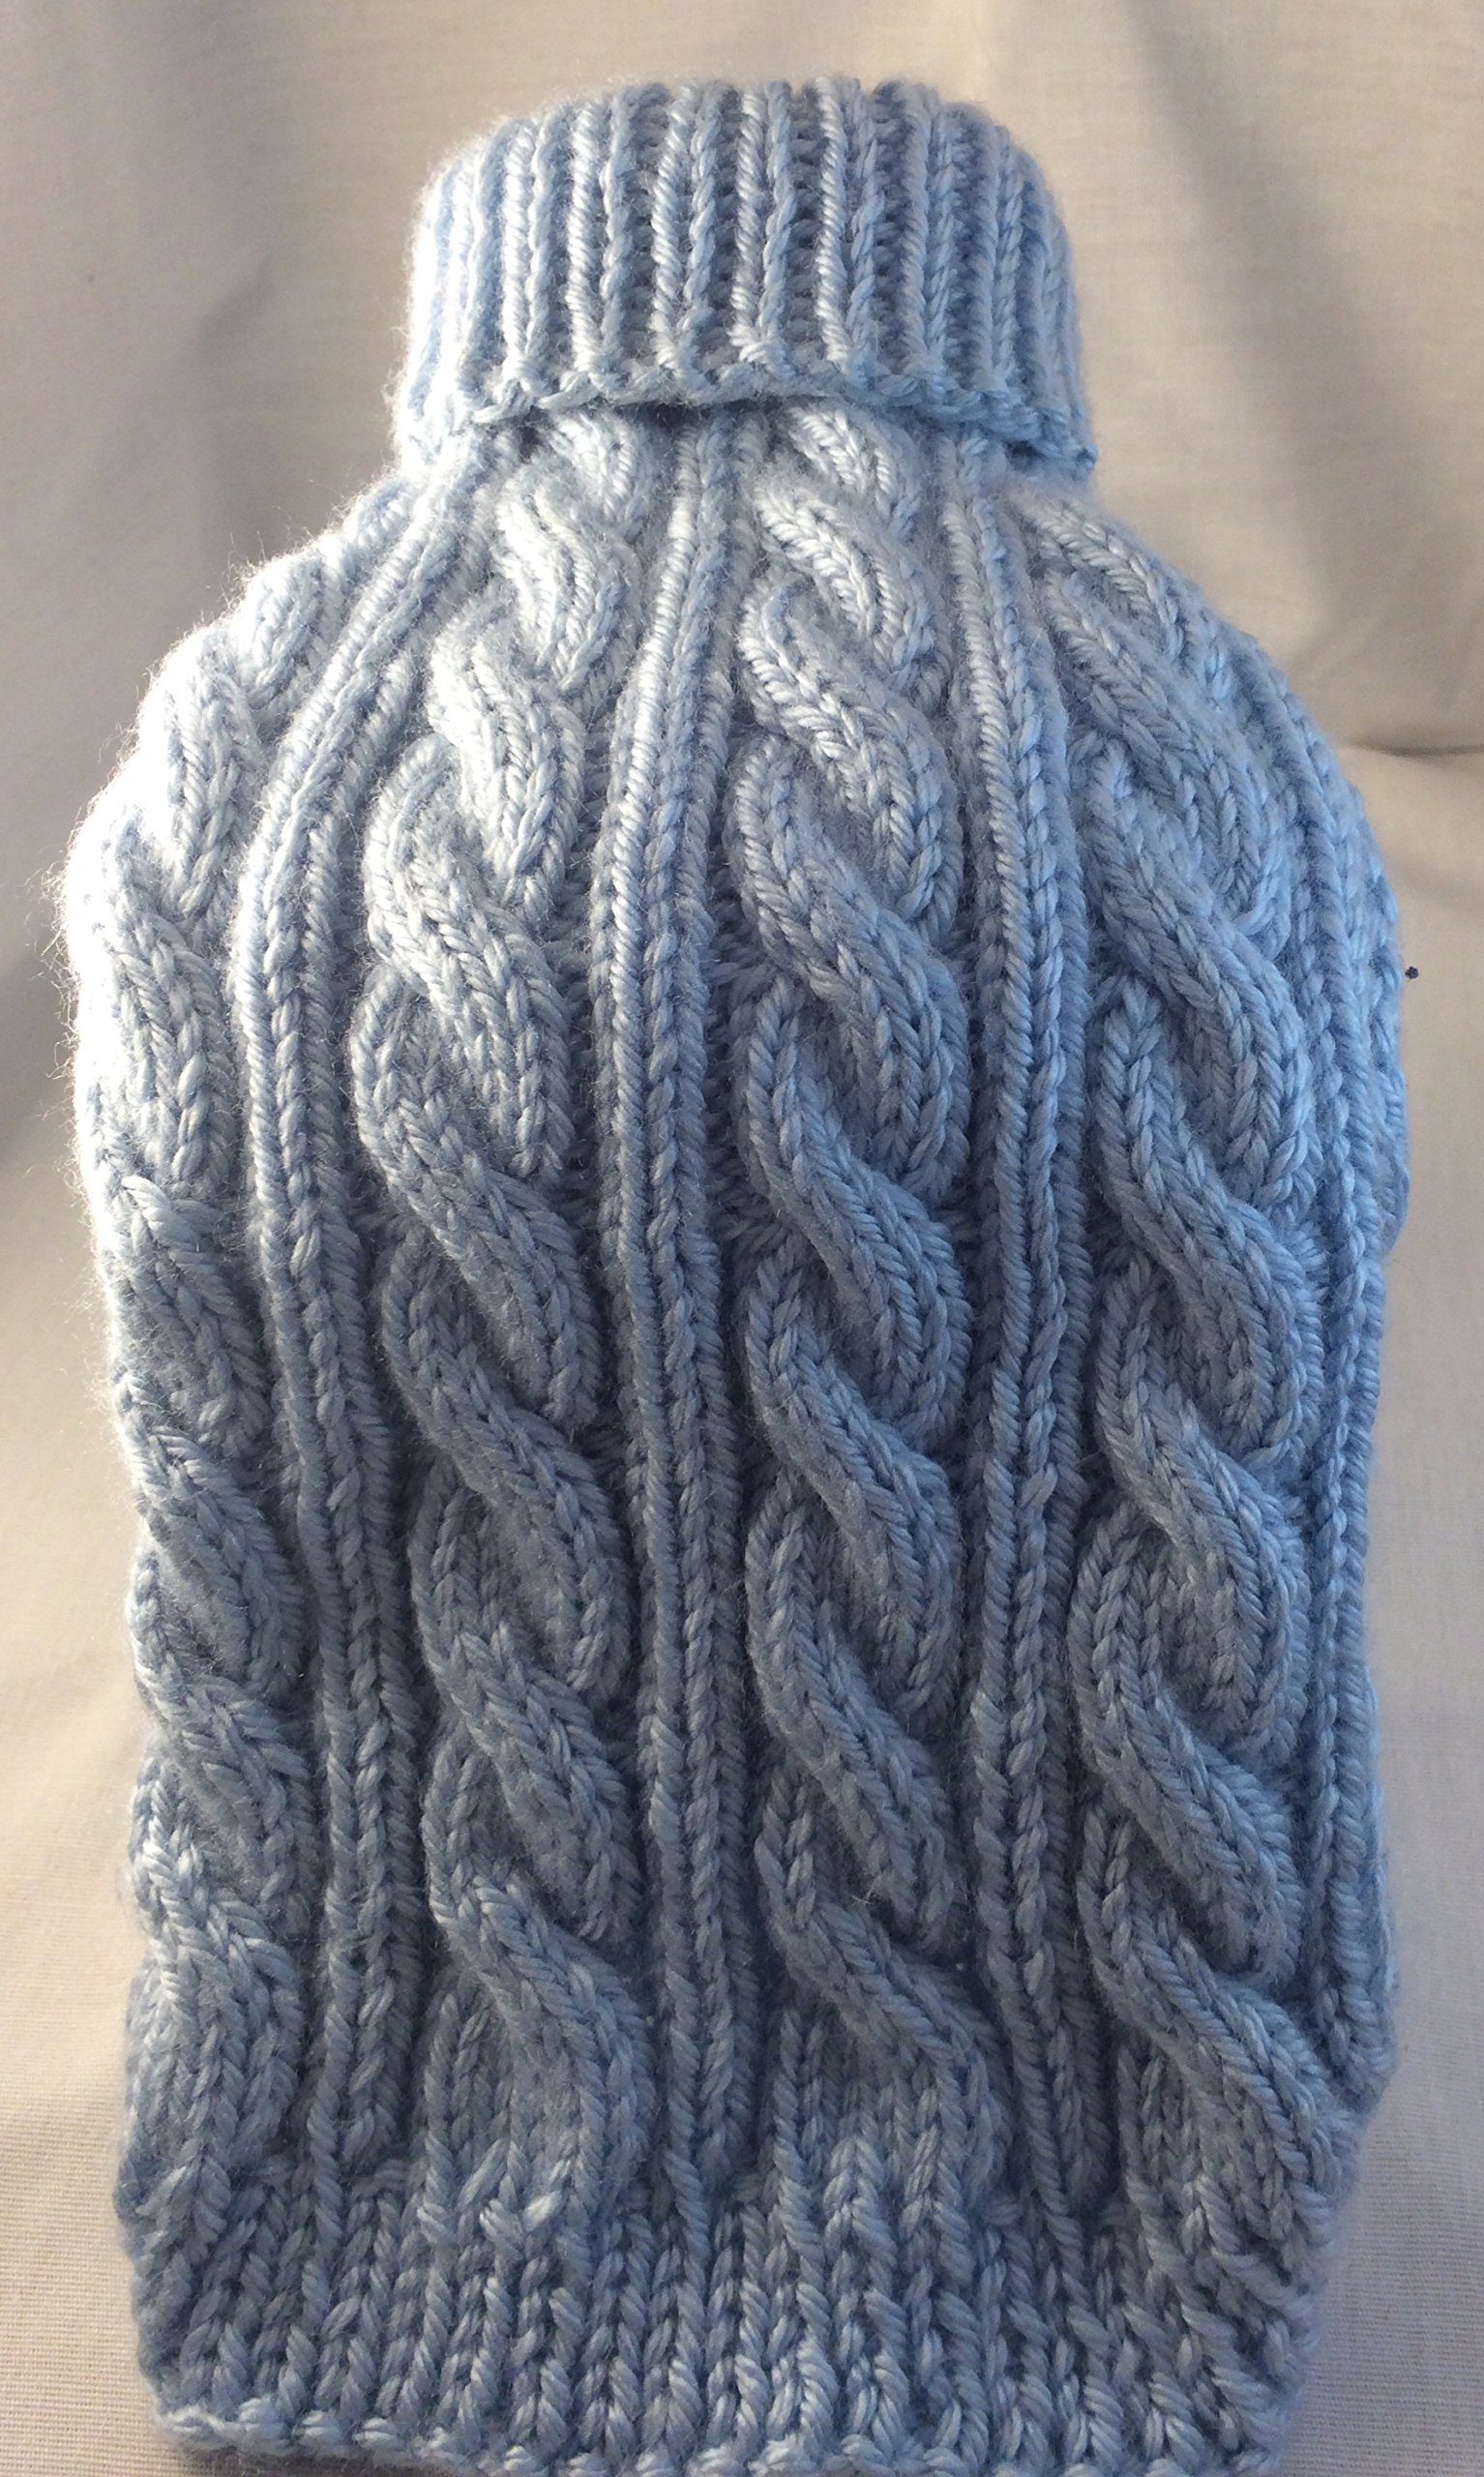 Hand knit cabled turtleneck, long sleeve pet sweater.